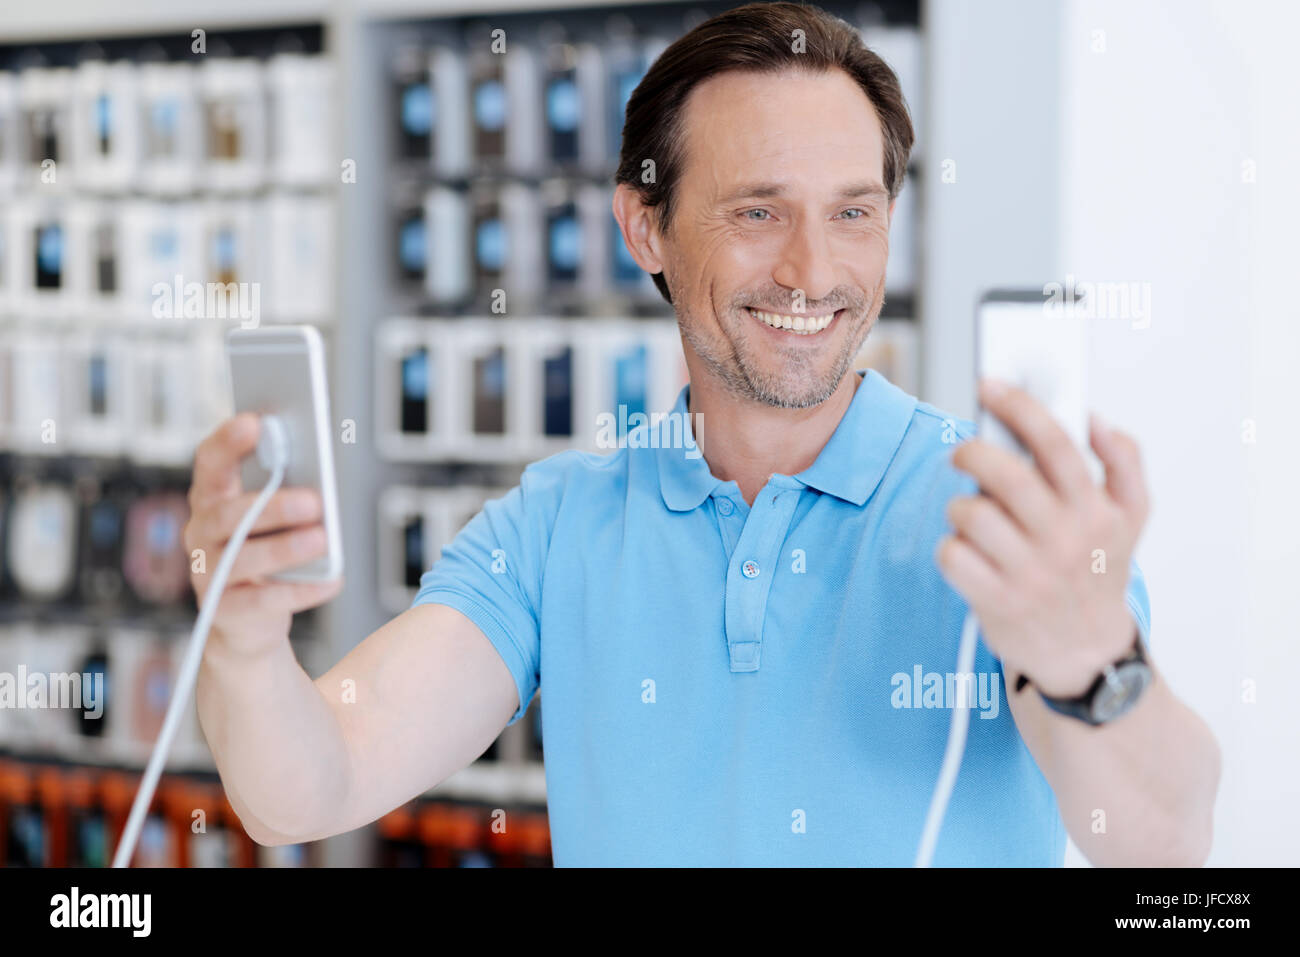 Cannot choose. Excited man holding two mockup cellphones and cannot come to a decision which one to boy while standing - Stock Image